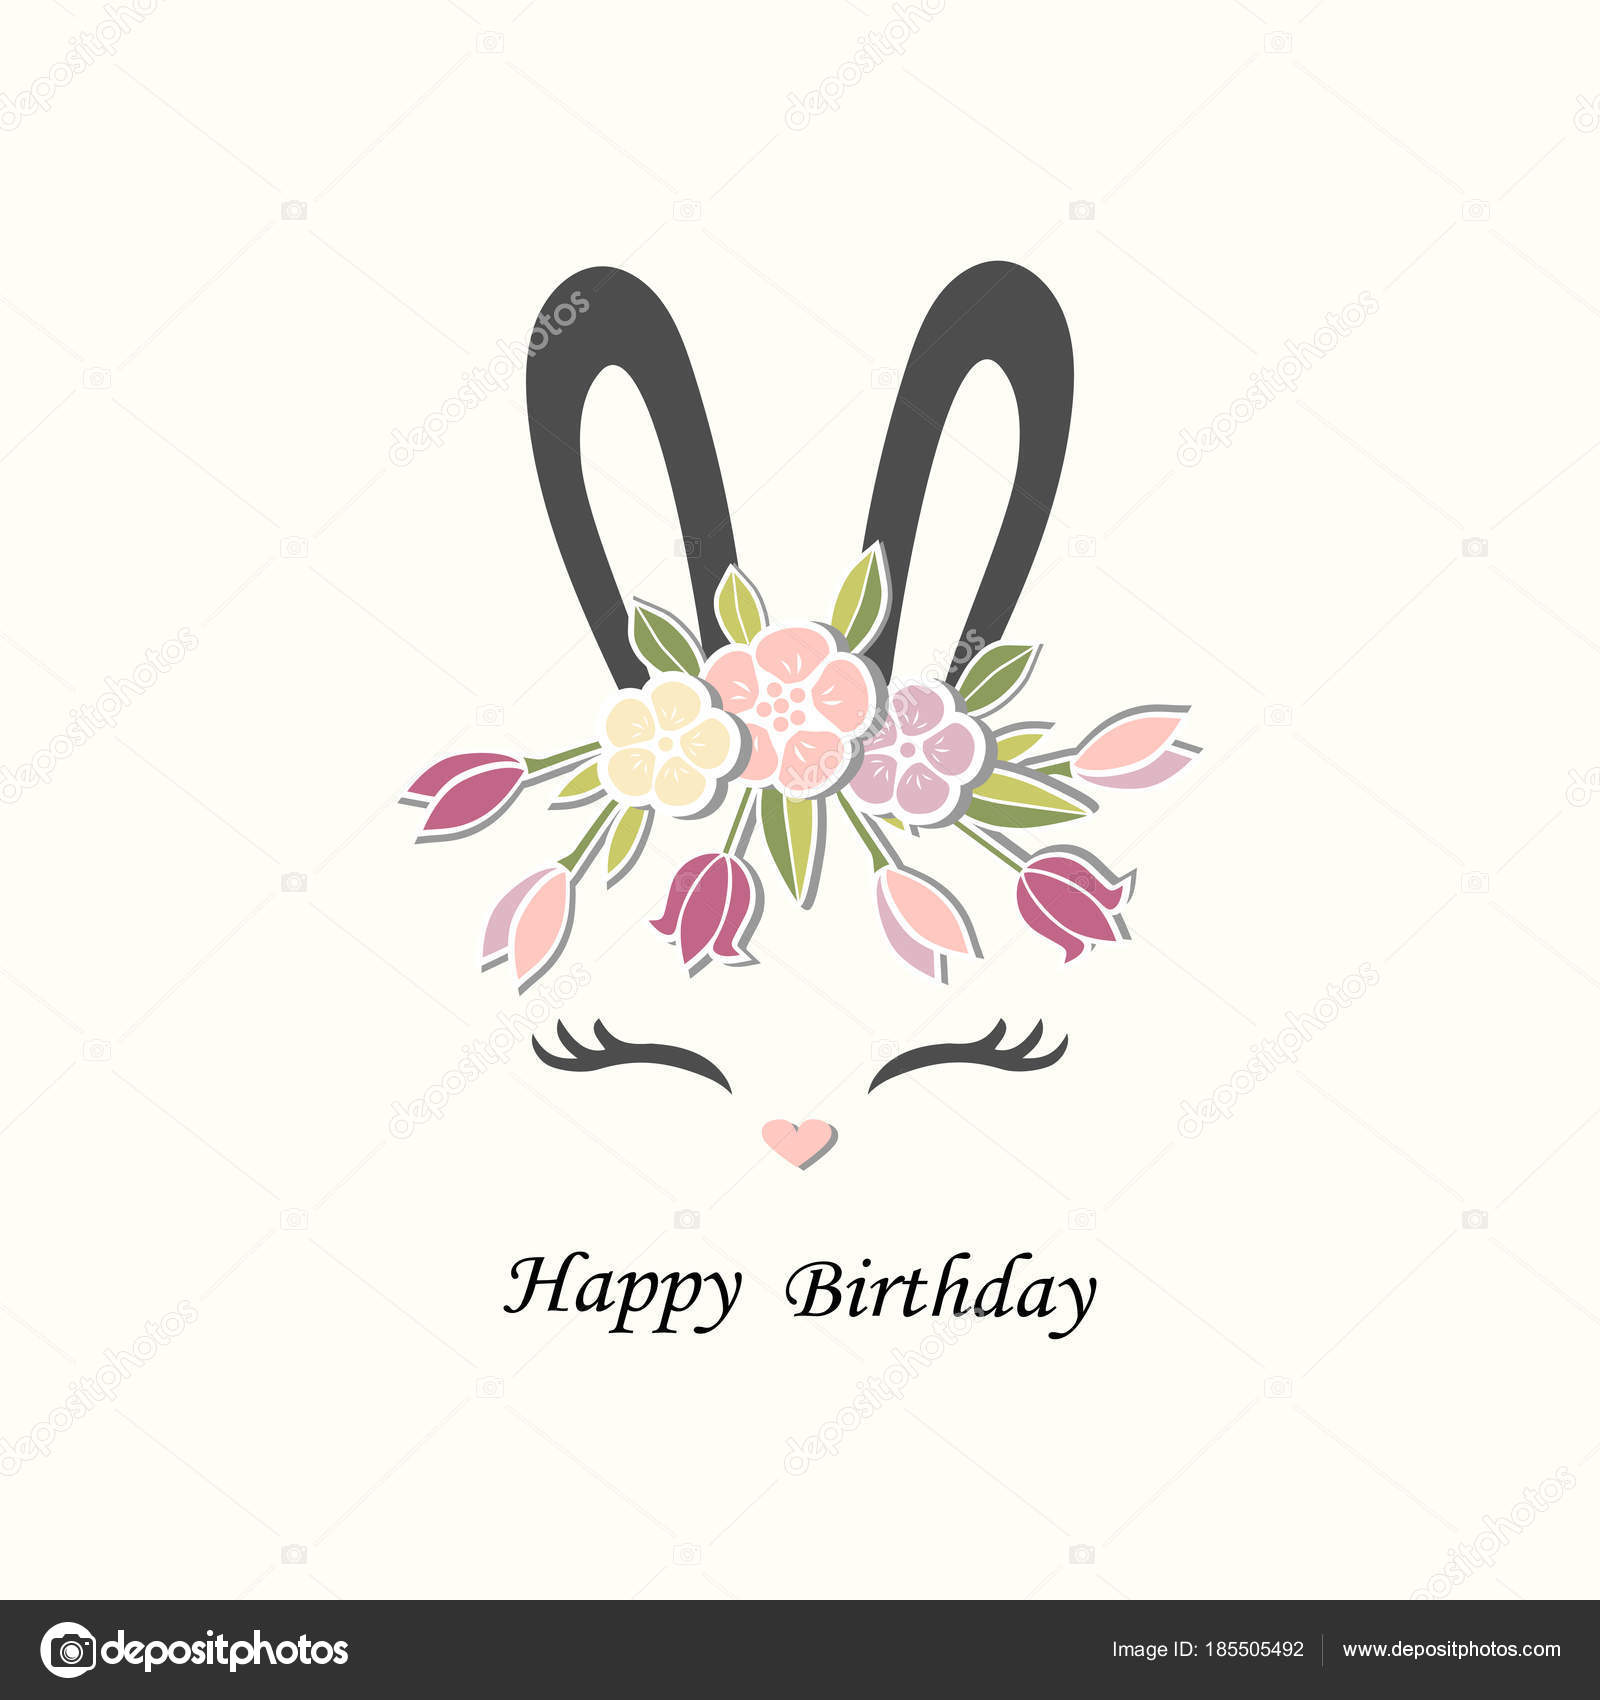 Vector Illustration Bunny Ears Smiling Eyes Floral Wreath Cute